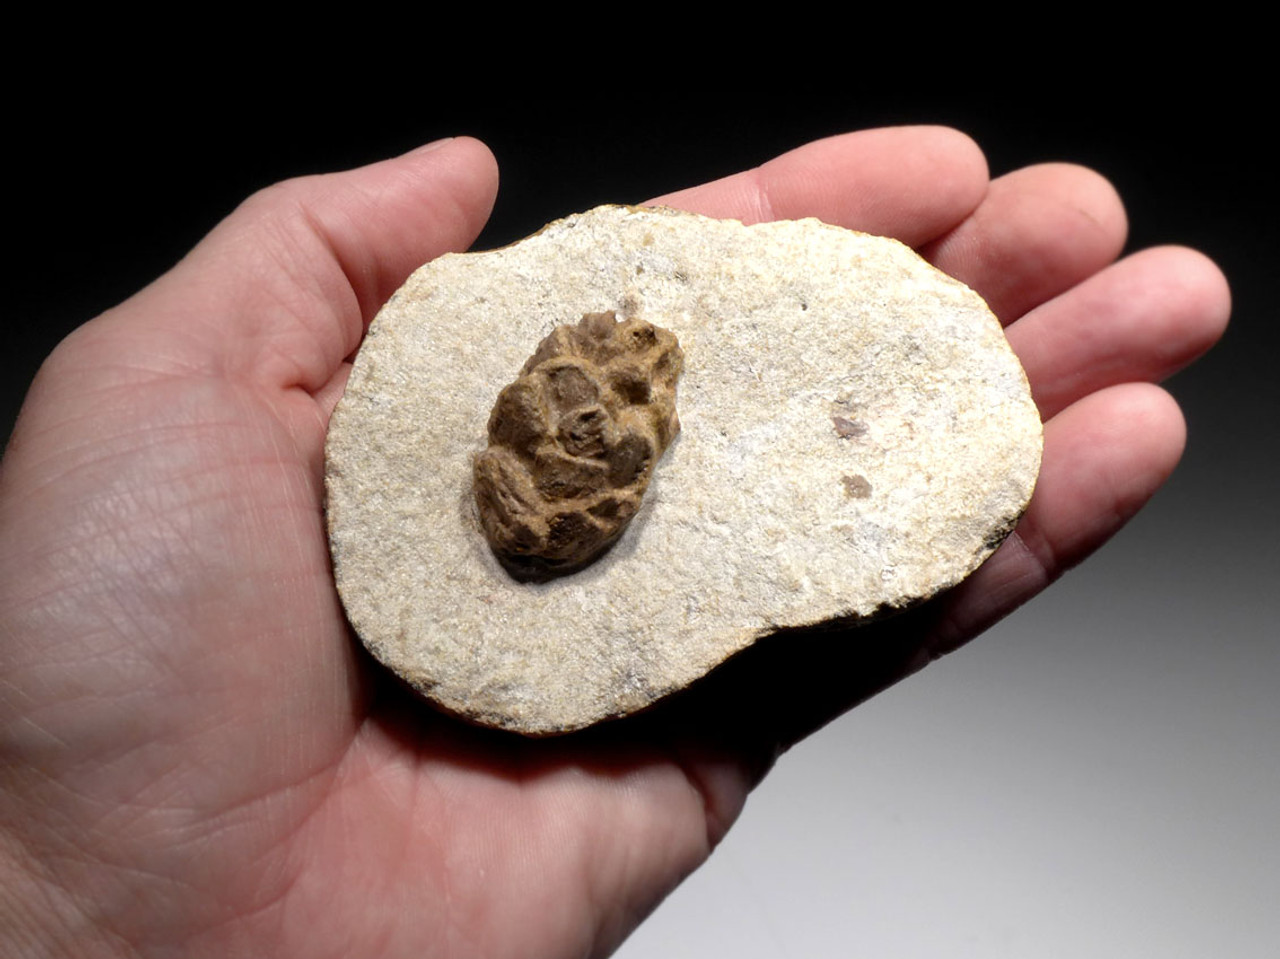 EXCEPTIONAL OLIGOCENE FOSSIL PINE CONE IN CONCRETION FROM BAD KREUZNACH GERMANY *PINC001